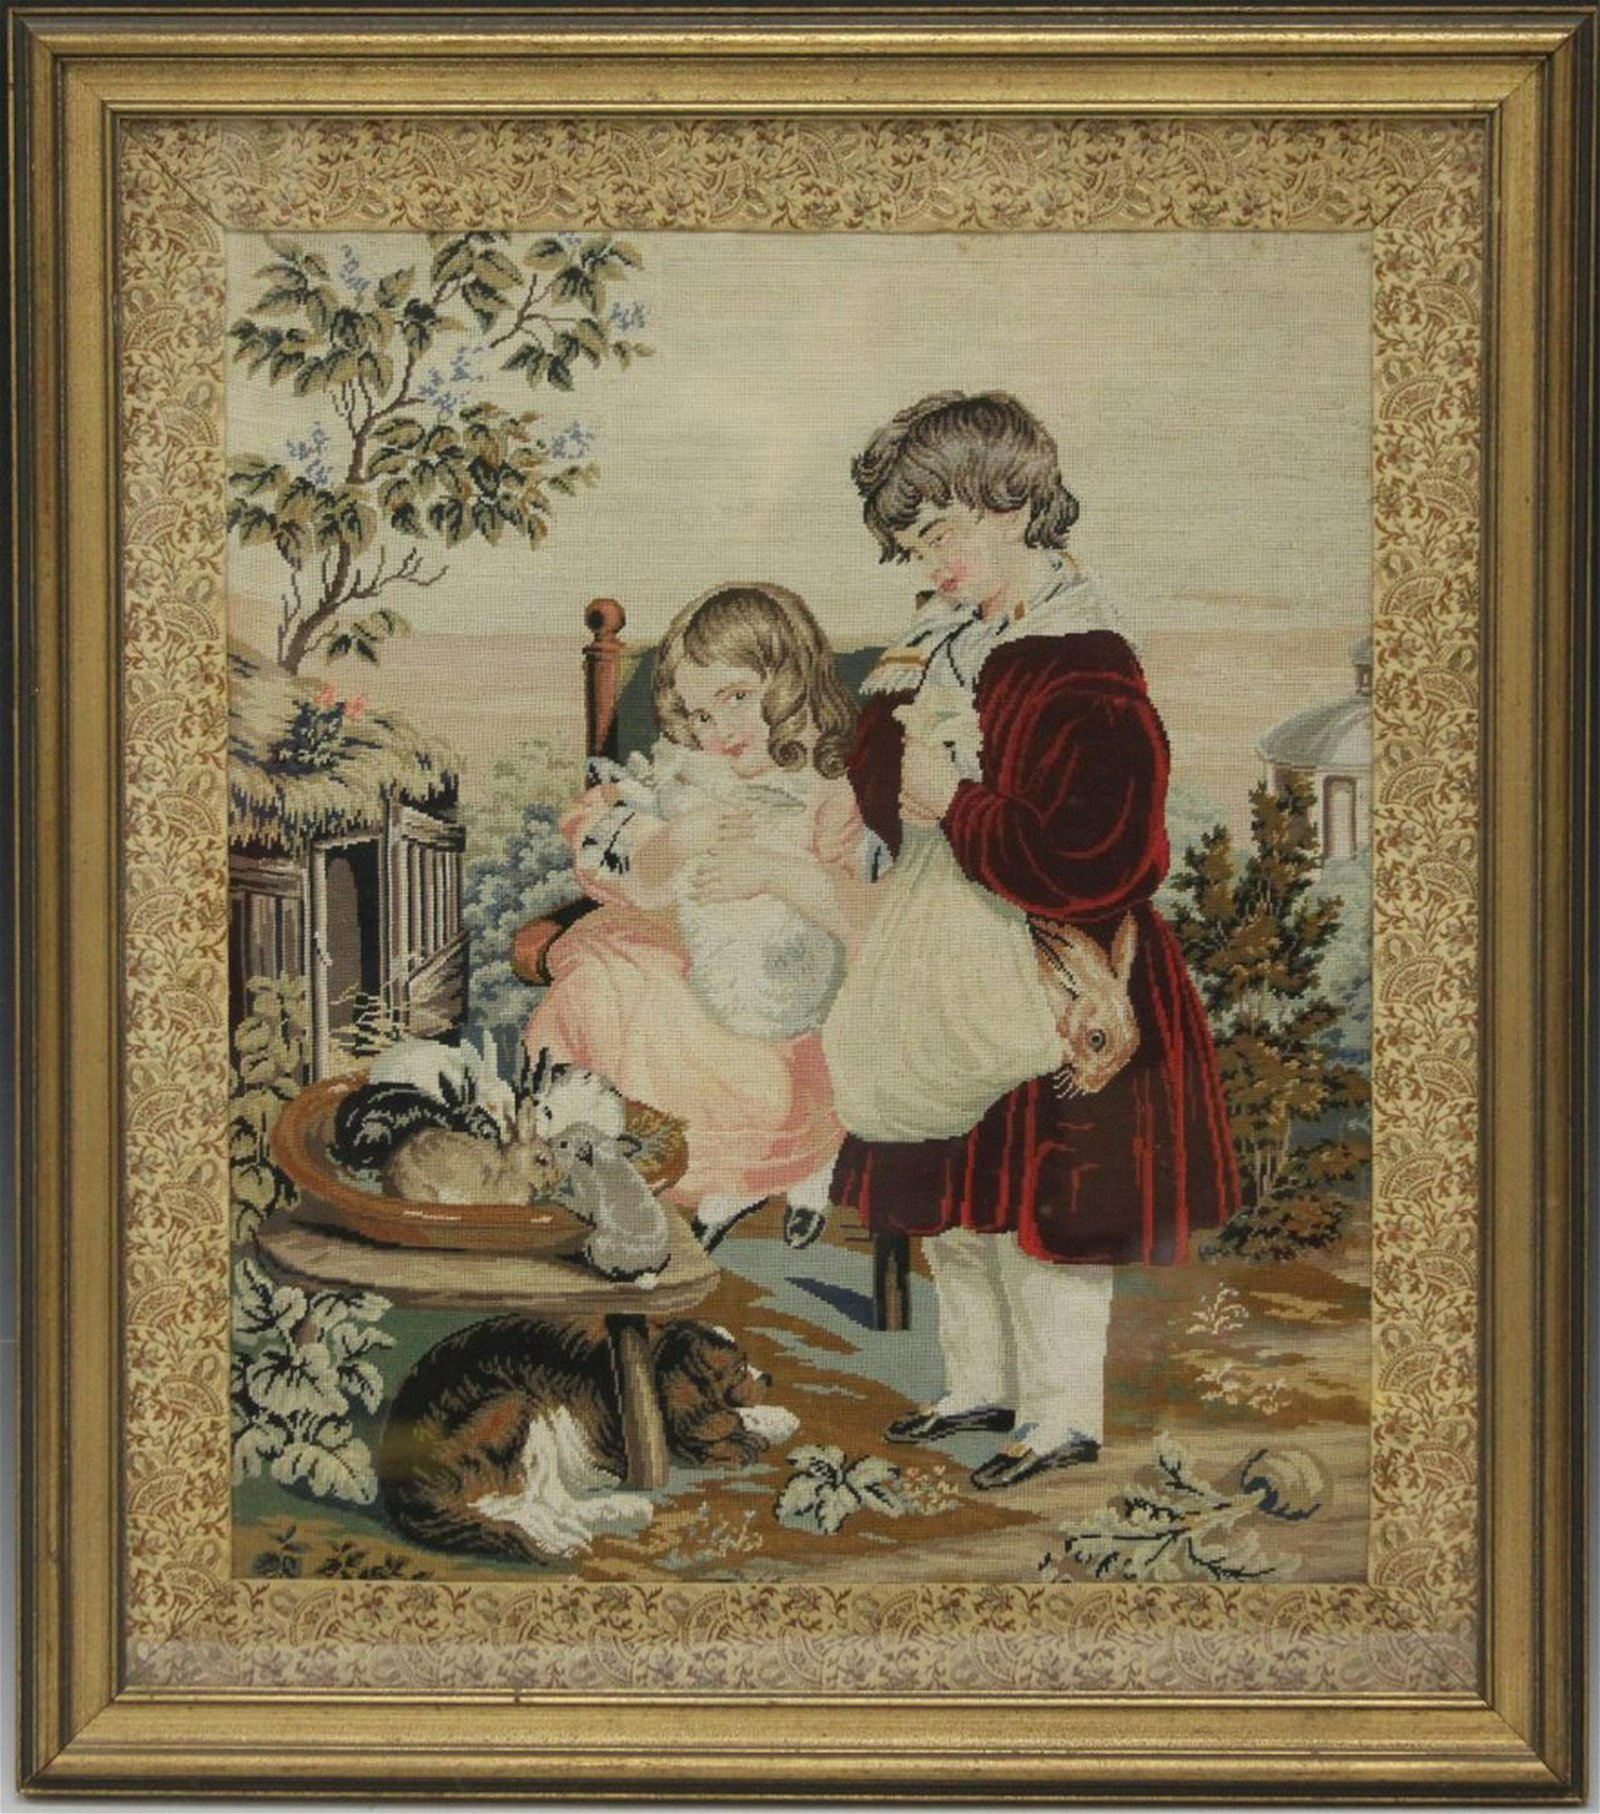 19TH C. PETITE POINT TAPESTRY, FRAMED